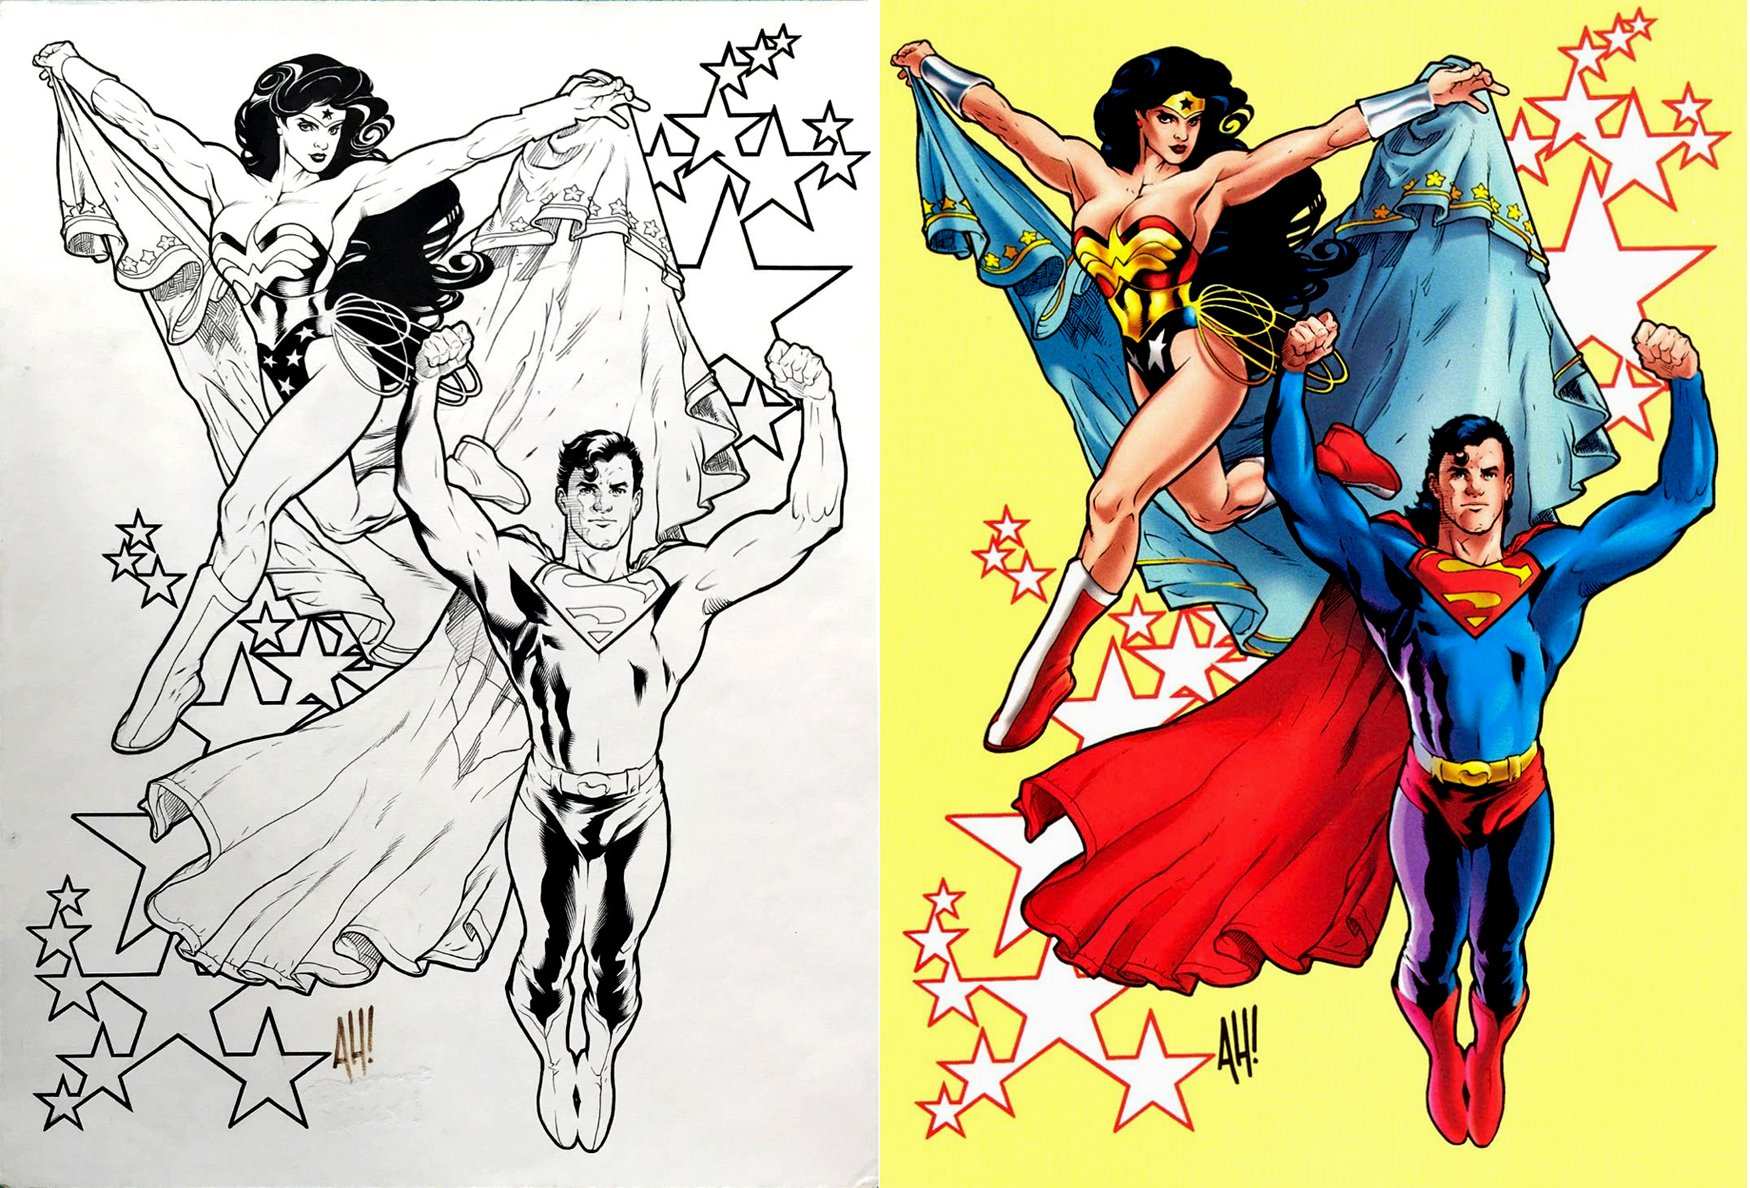 Superman: The Man of Steel Gallery #1 SPLASH (SOLD LIVE ON 'DUELING DEALERS OF COMIC ART' EPISODE #9 PODCAST ON 3-24-2021 (RE-WATCH OUR LIVE ART SELLING PODCAST HERE!)